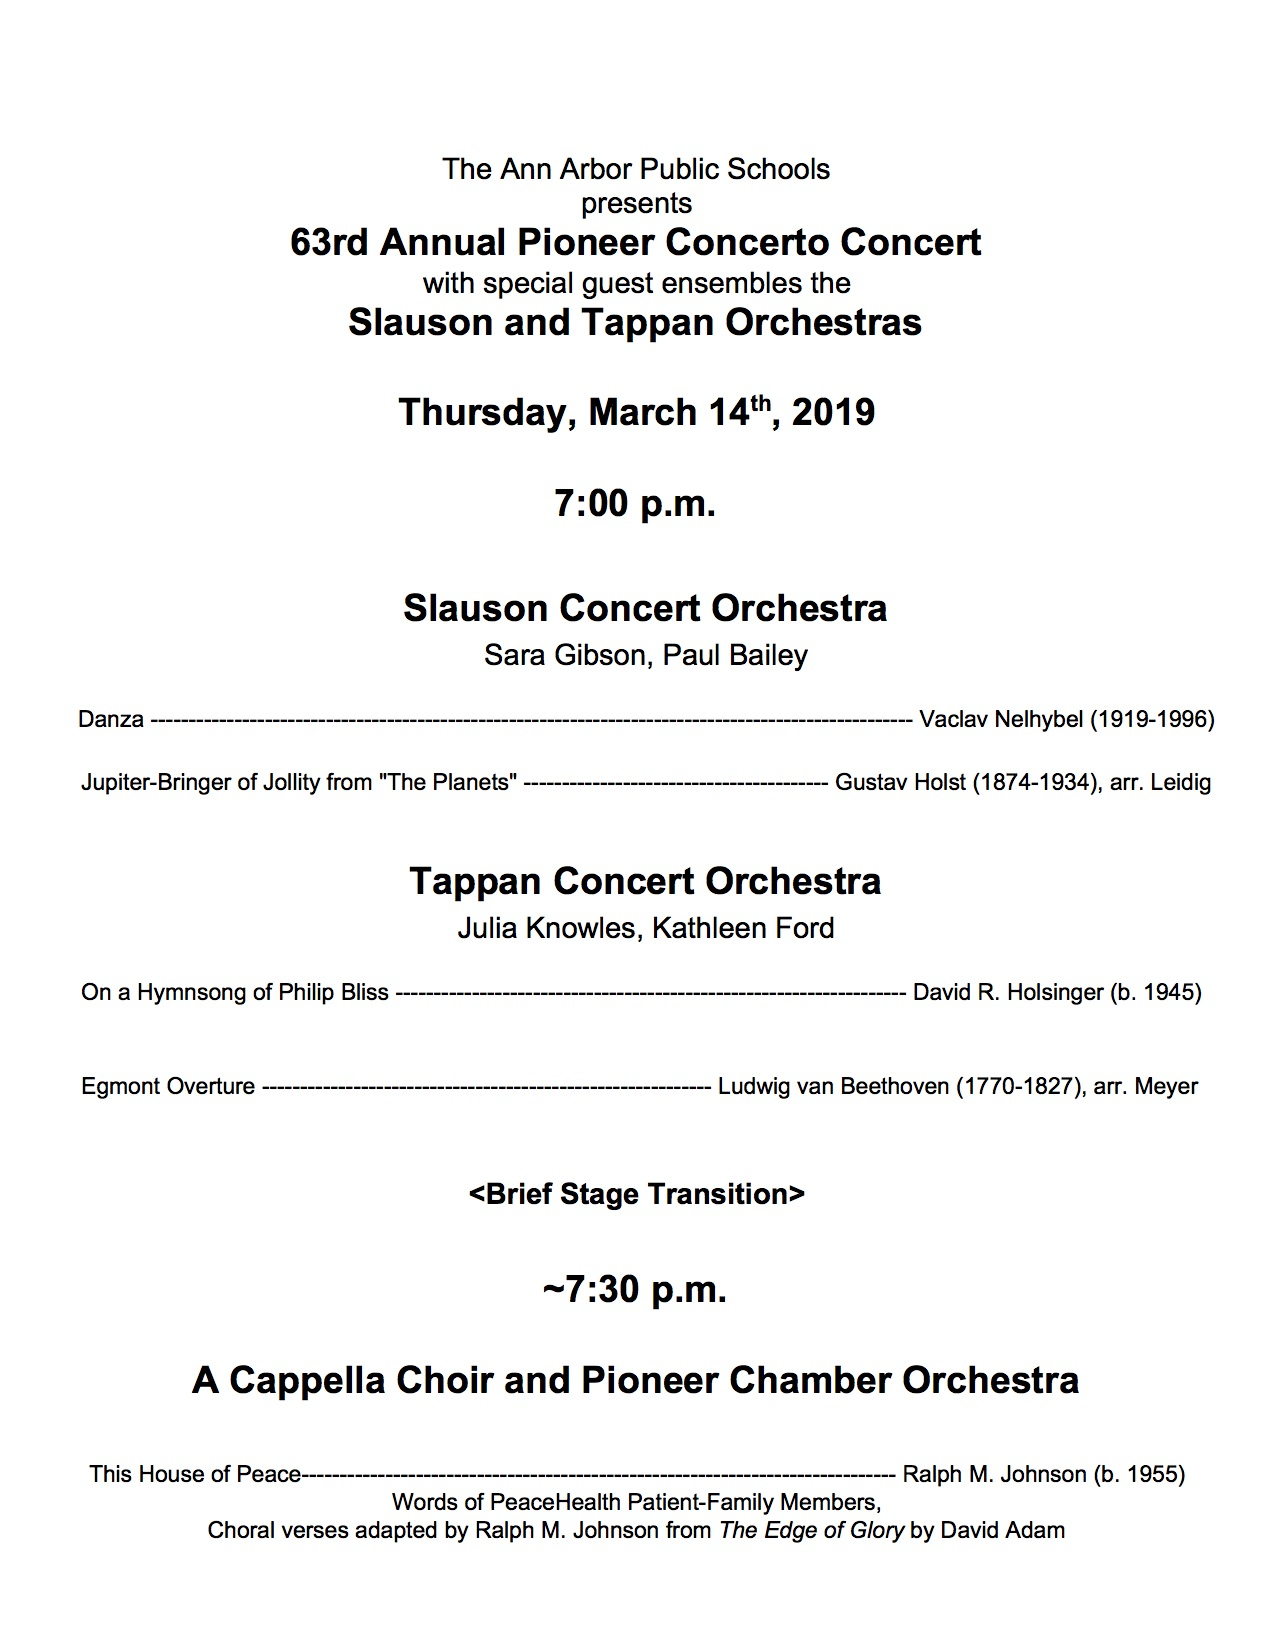 63rd Concerto Program 2019 (1) (dragged).jpg